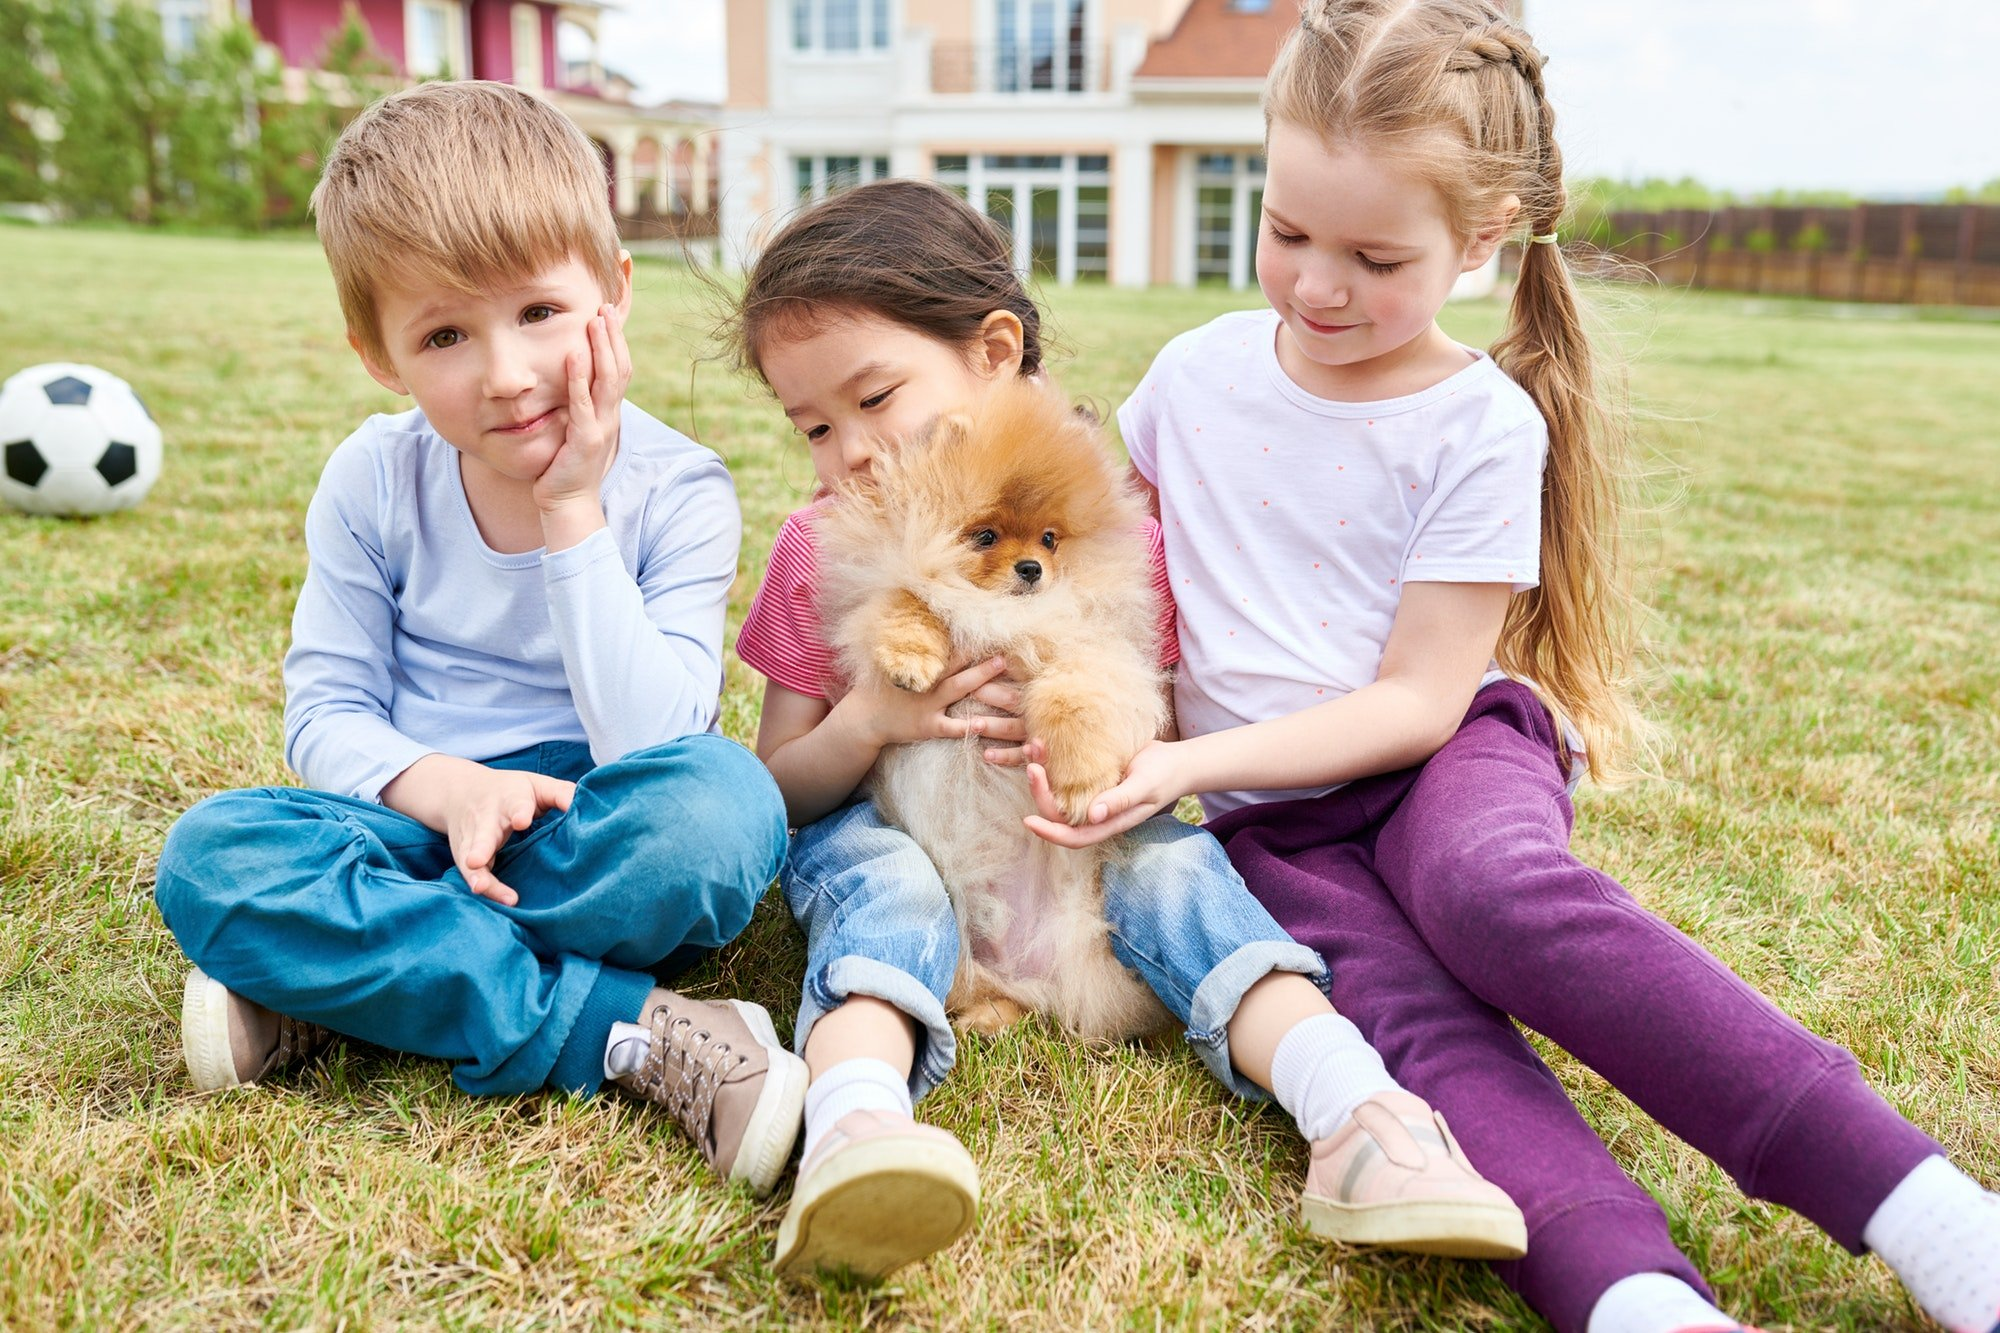 Happy Kids Playing with Cute Puppy